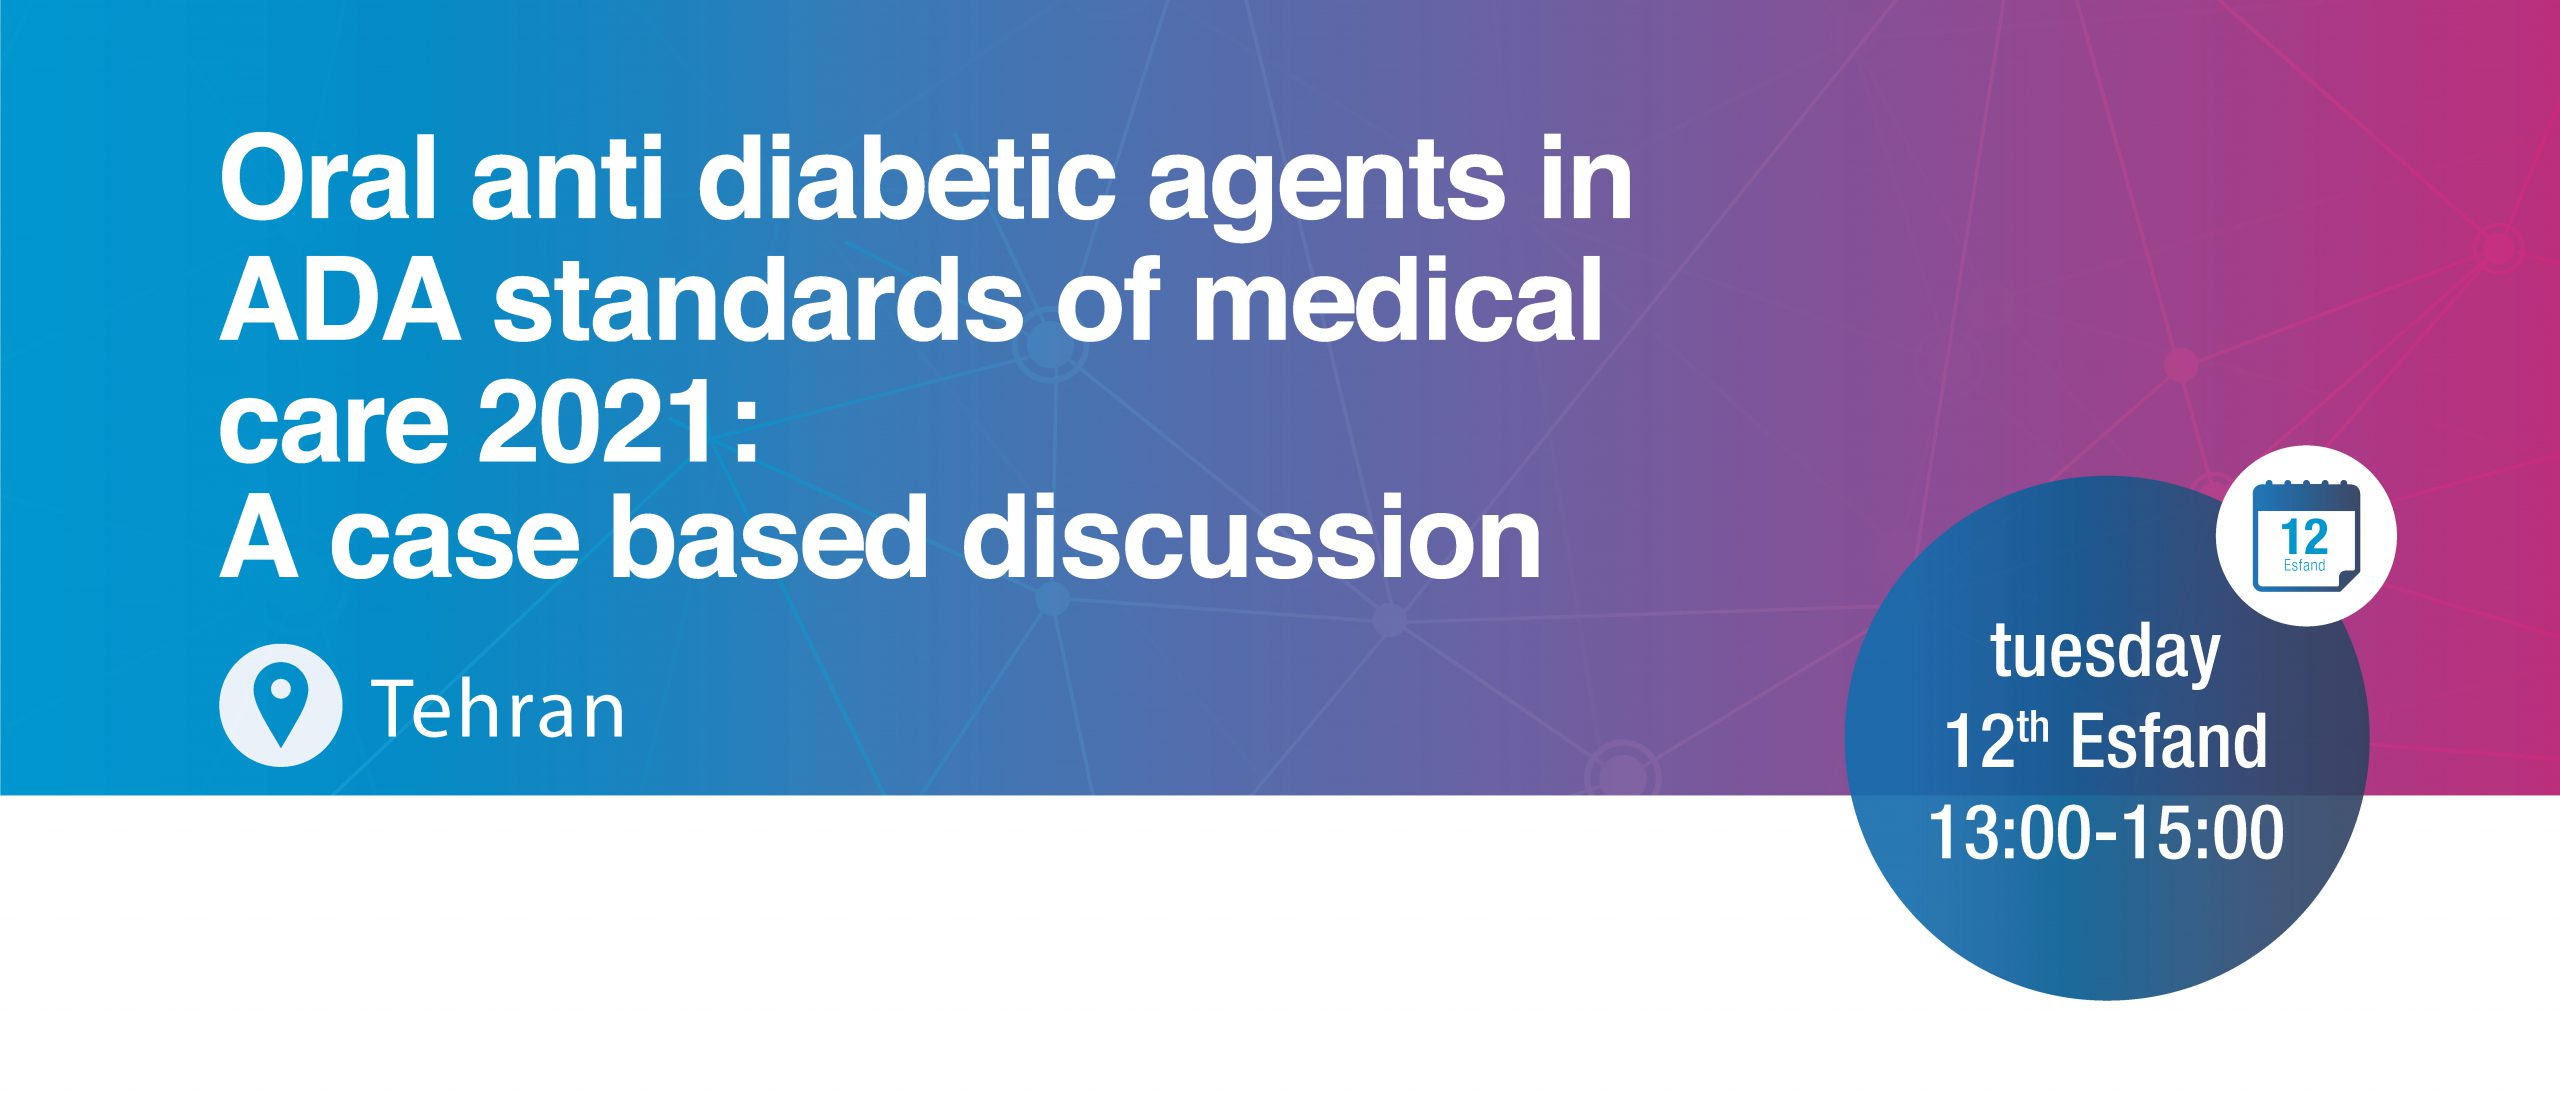 Oral anti diabetic agents in ADA standards of medical care 2021: A case based discussion